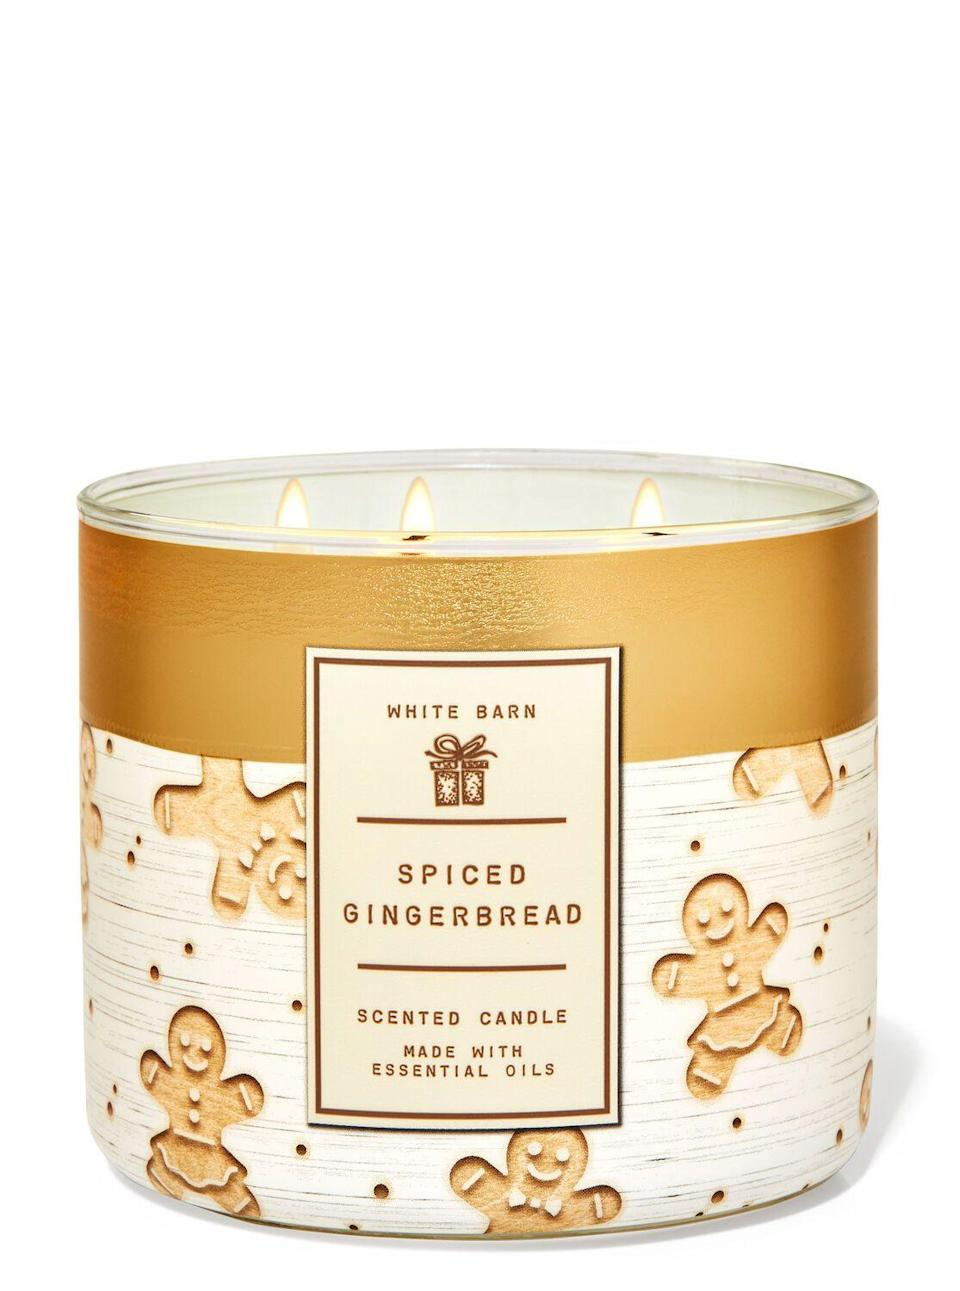 "<p><strong>Bath & Body Works</strong></p><p>bathandbodyworks.com</p><p><strong>$24.50</strong></p><p><a href=""https://www.bathandbodyworks.com/p/spiced-gingerbread-3-wick-candle-026182167.html"" rel=""nofollow noopener"" target=""_blank"" data-ylk=""slk:Shop Now"" class=""link rapid-noclick-resp"">Shop Now</a></p><p>I lit this waxy goodness while watching<a href=""https://www.cosmopolitan.com/entertainment/tv/a34632309/dash-and-lily-netflix-cast-ages/?utm_campaign=cosmo-2020-tradetracker&utm_medium=affiliate&utm_source=tradetracker&utm_term=137180"" rel=""nofollow noopener"" target=""_blank"" data-ylk=""slk:Dash & Lily on Netflix"" class=""link rapid-noclick-resp""> <em>Dash & Lily </em>on Netflix</a> (a pure, low-stakes delight that my pretentious teenage self would have eaten up if it came out in 2010). Cozy? Check. Warm? Check. Festive? Duh. </p><p>When I woke up the next morning my apartment STILL smelled like this and I was not mad about it. </p>"